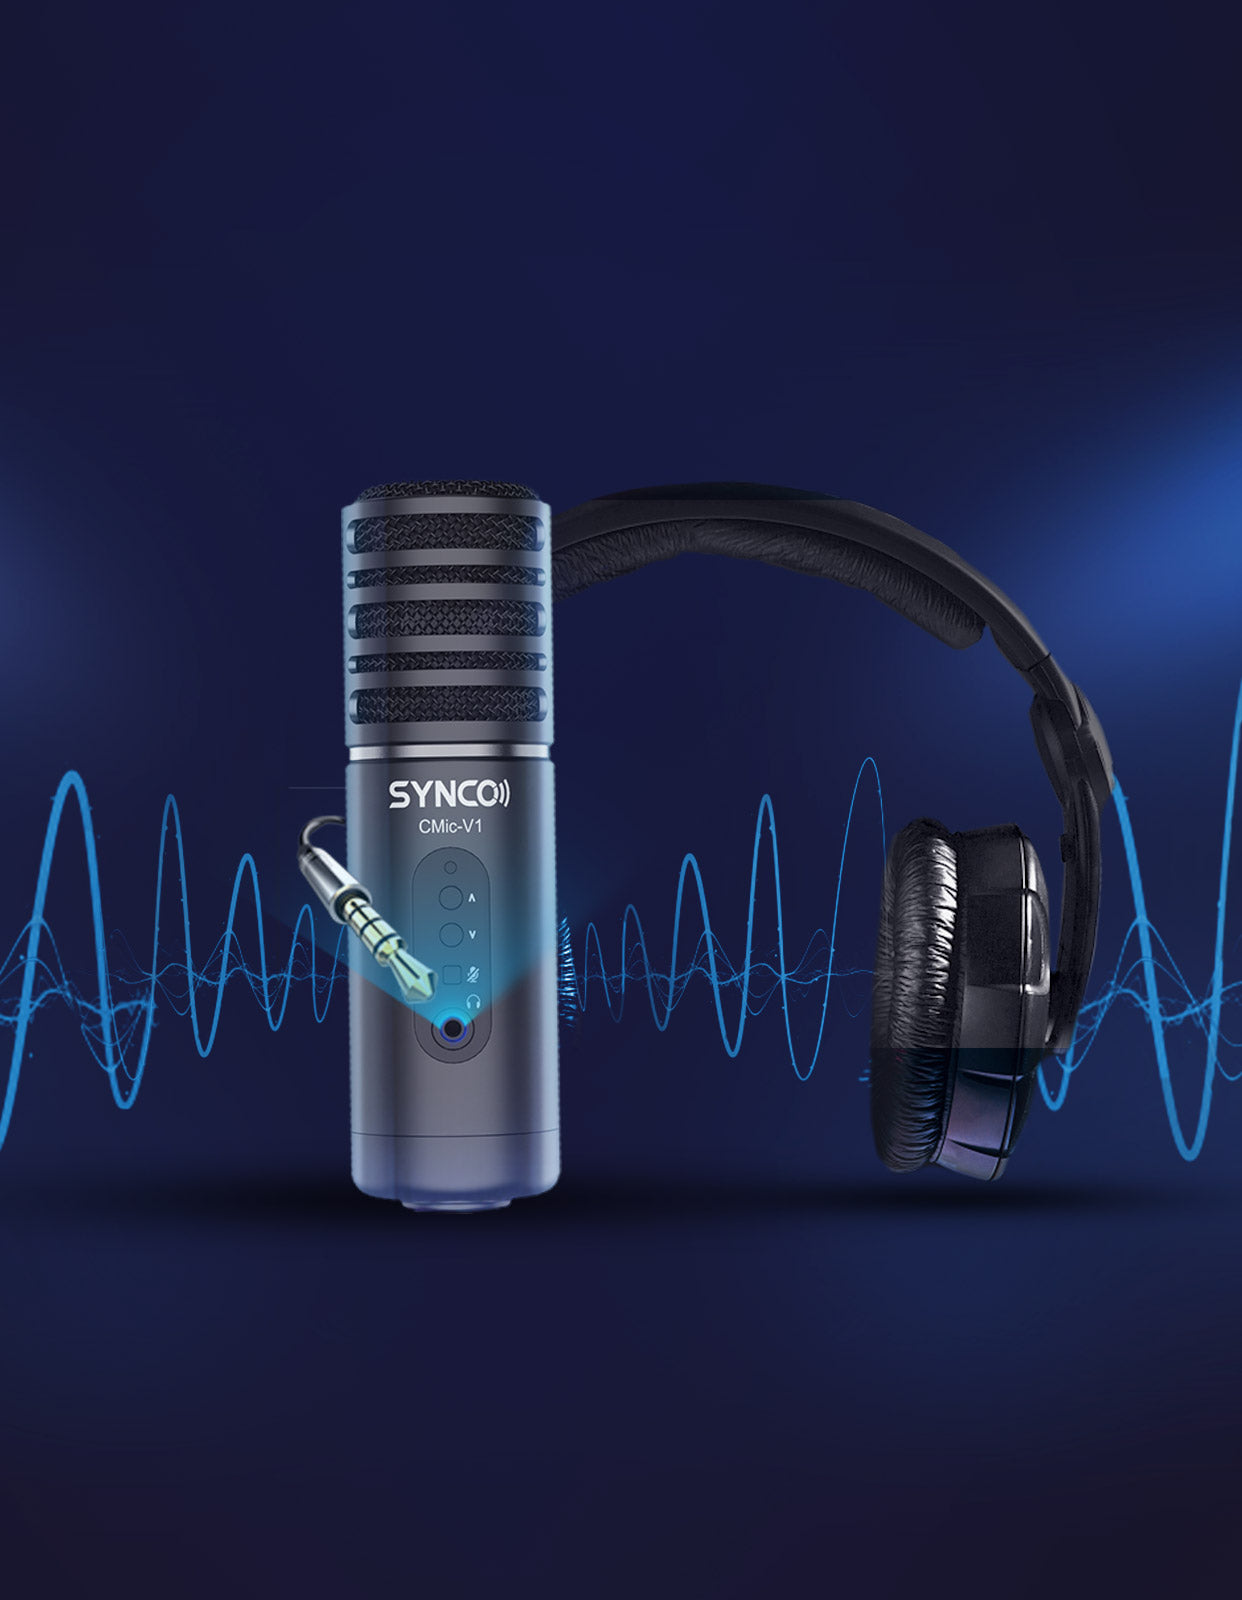 SYNCO CMic-V1 User-friendly Design for Easy Use